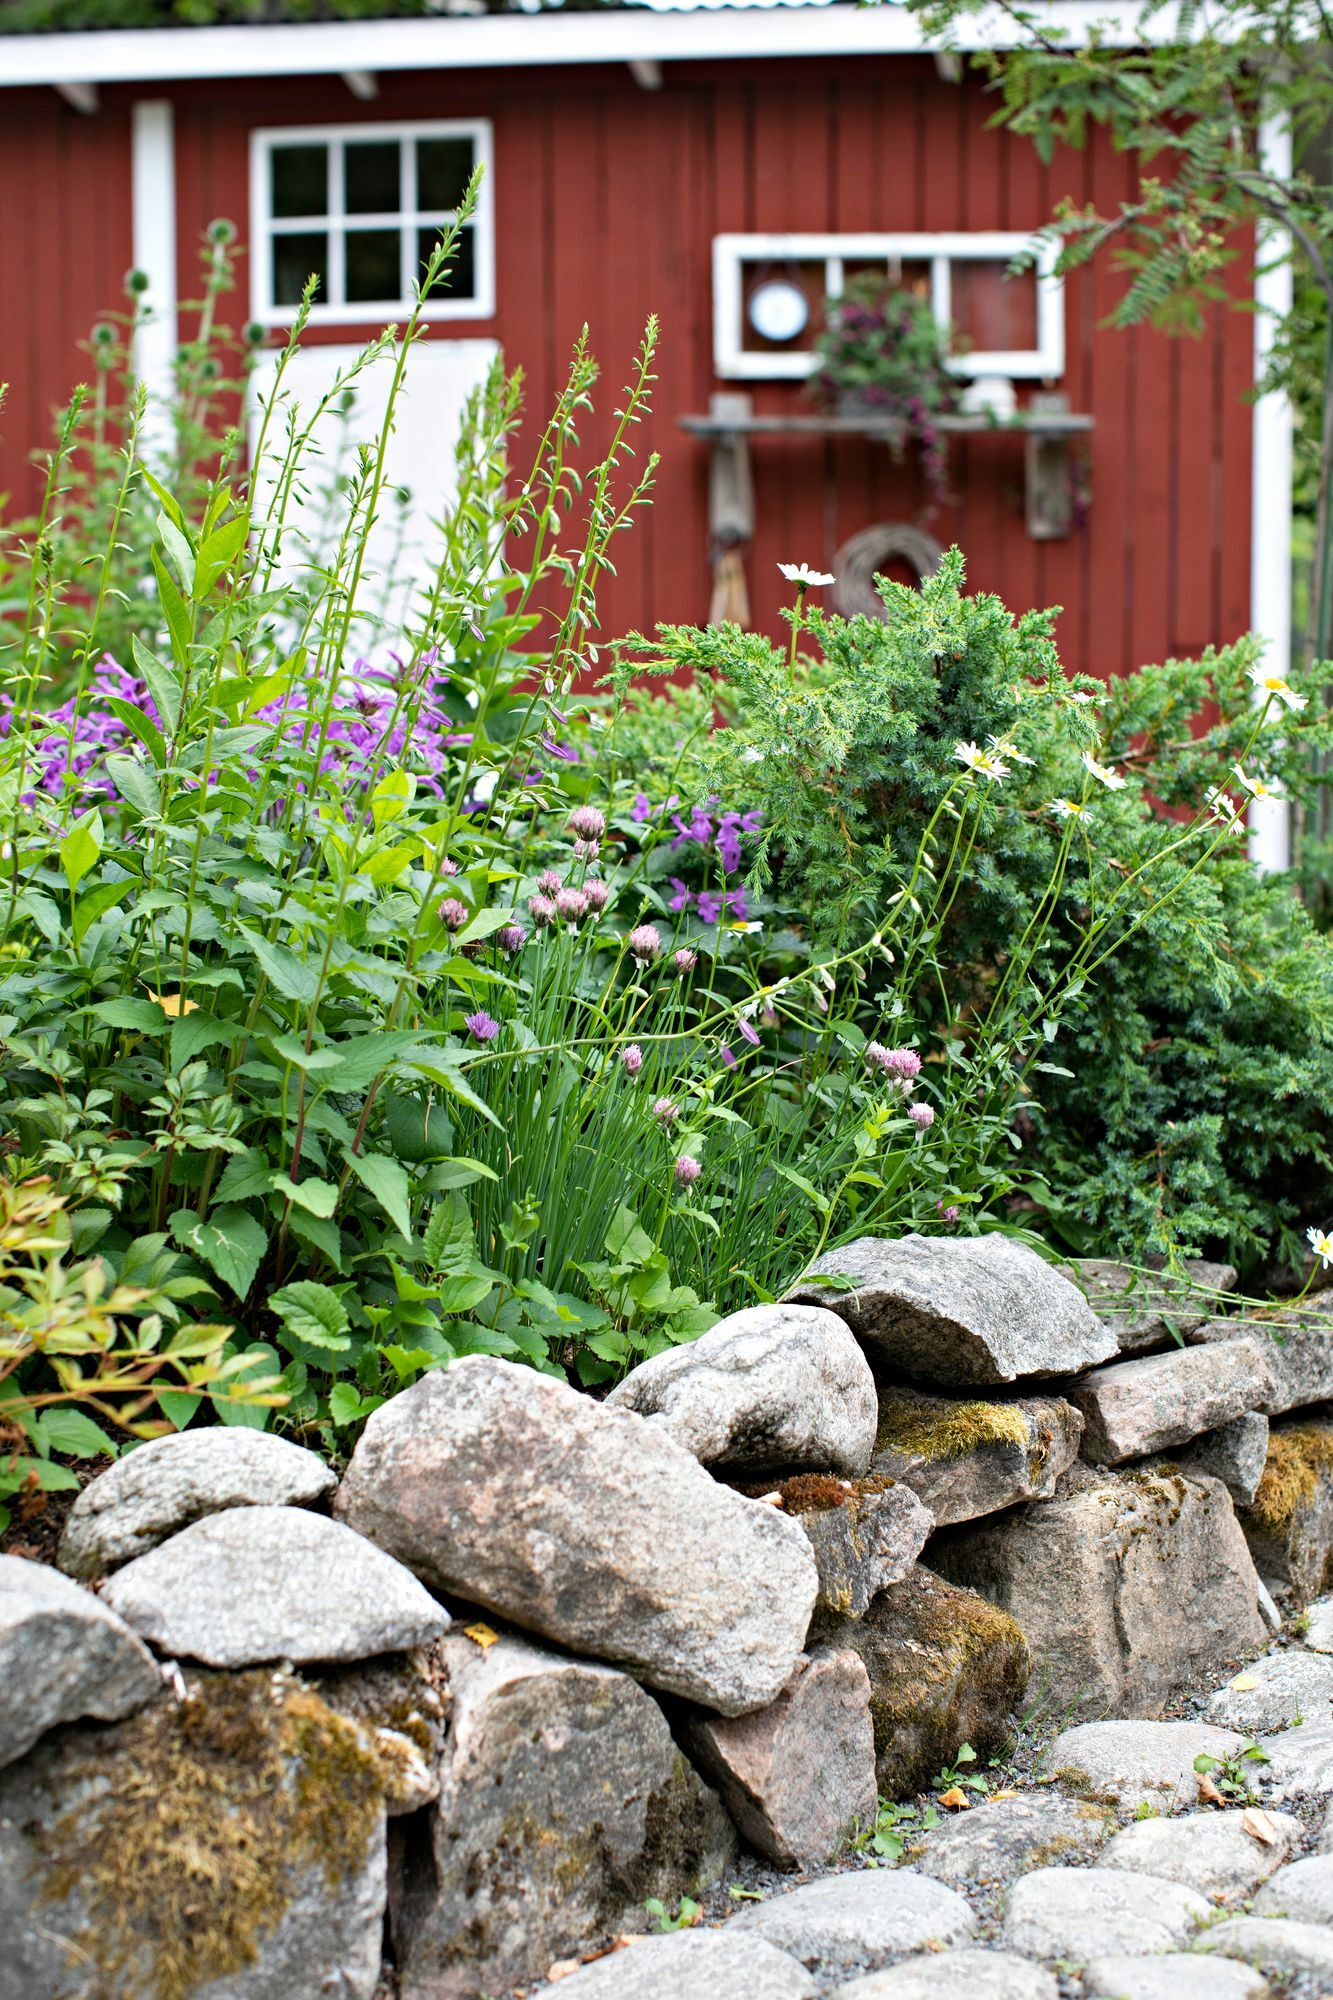 The stone yard utilizes the natural stones found on the plot at the edges of the raised benches.  They have 20 to 30 centimeters of soil above the ground.  Perennials thrive on a raised bench, as the ground melts in early spring and in winter the plants do not suffer from winter wetness.